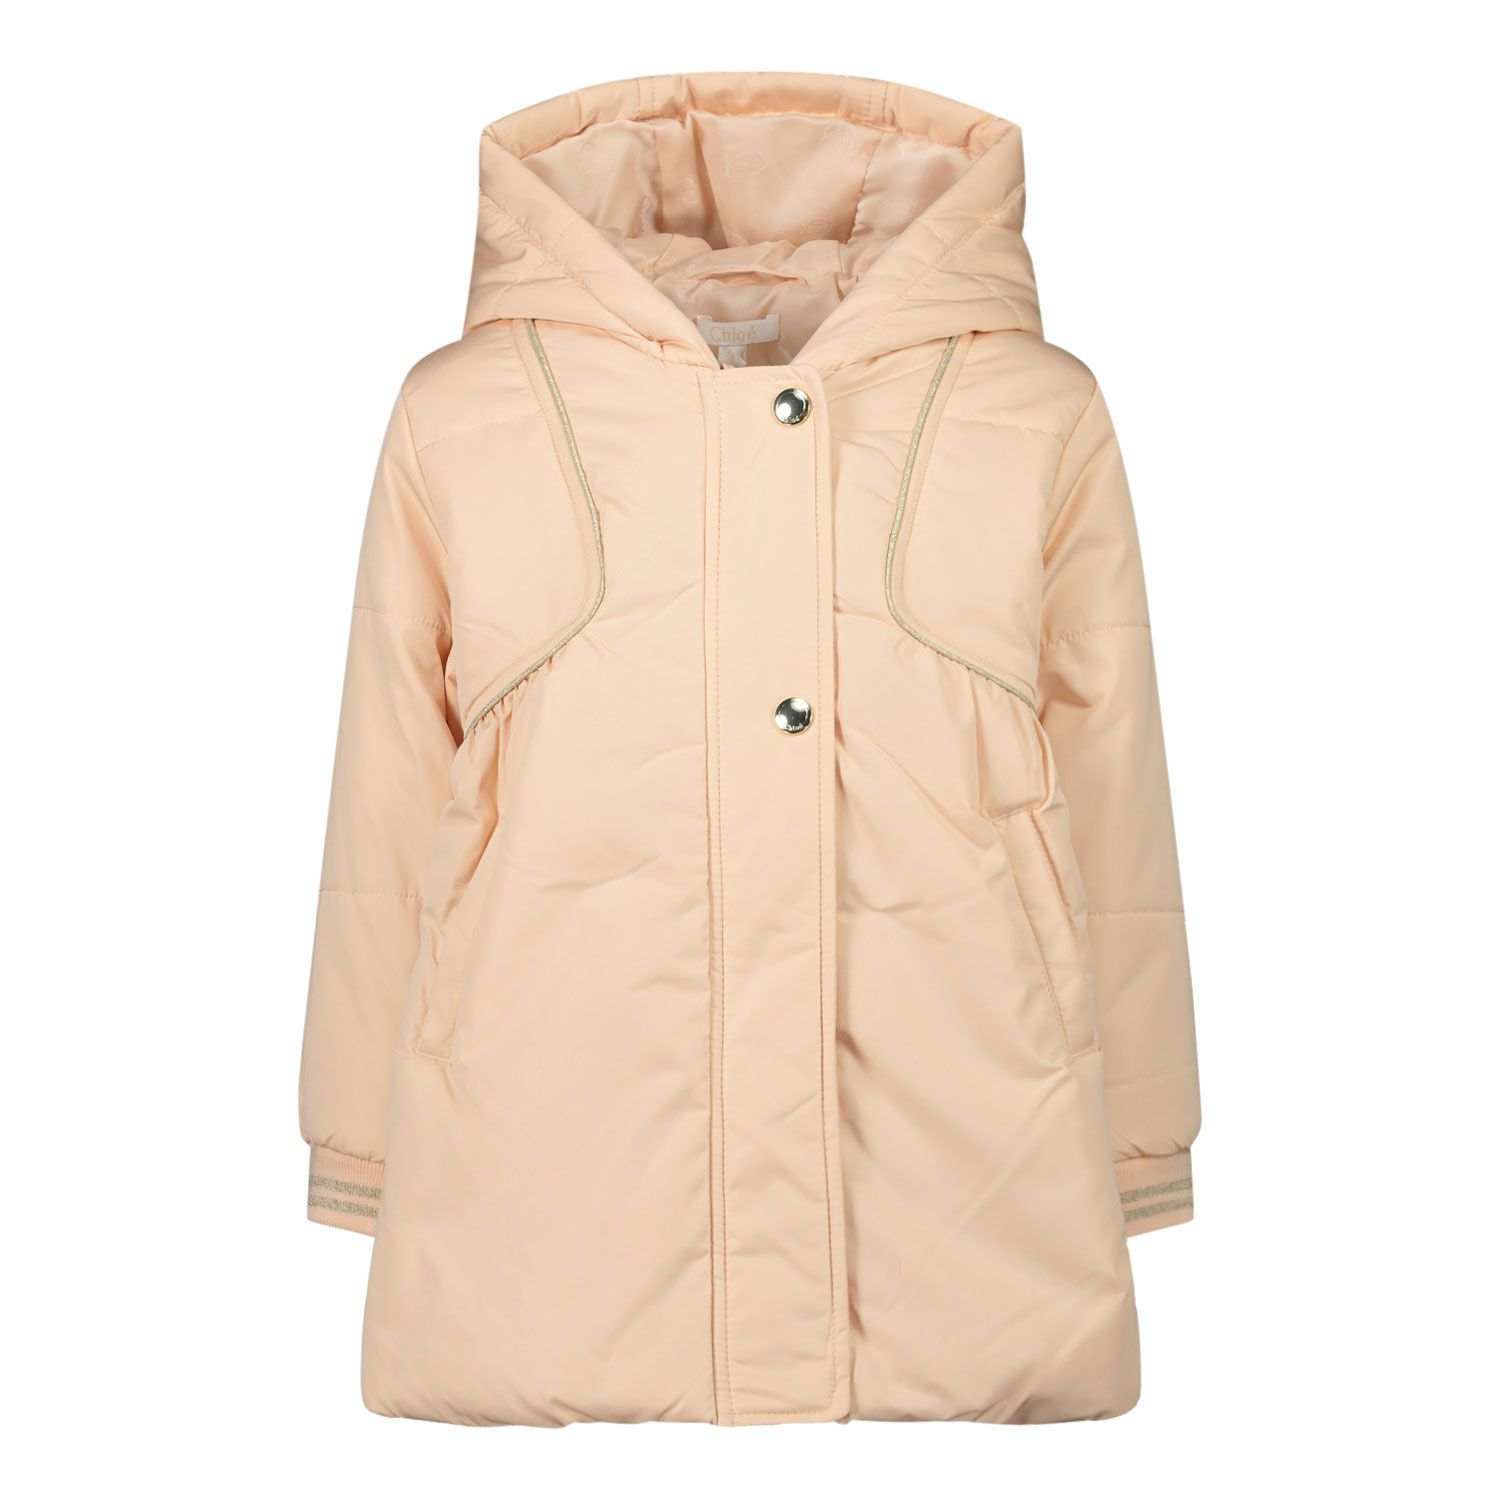 Picture of Chloé C06110 baby coat light pink